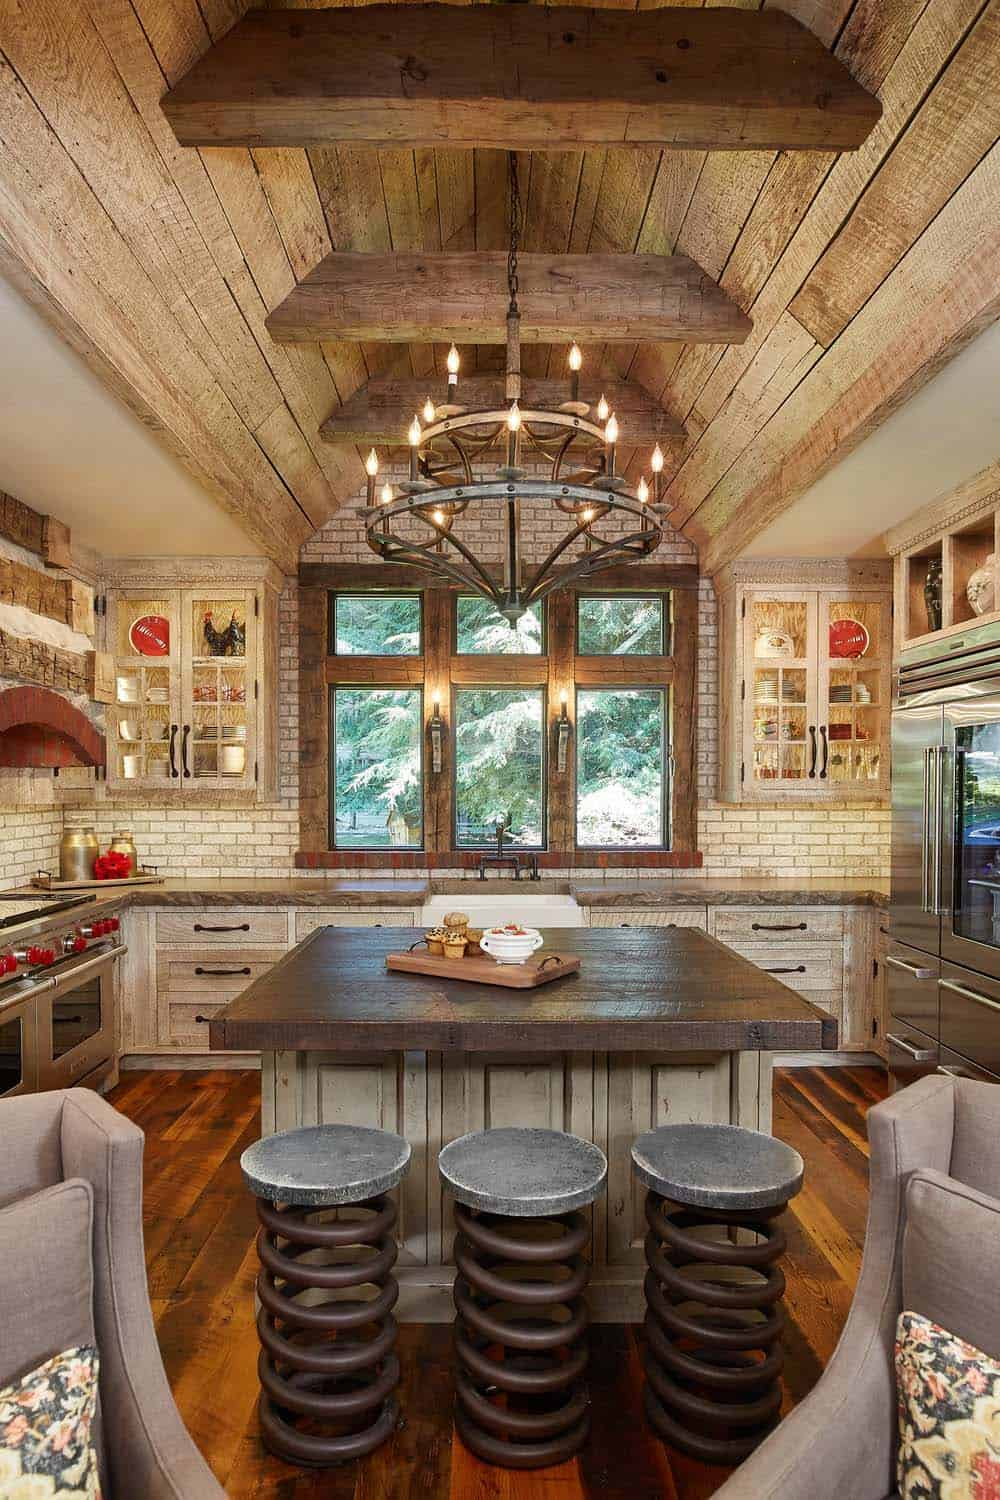 45 most pinteresting kitchens featured on 1 kindesign for 2016 for Rustic style interior